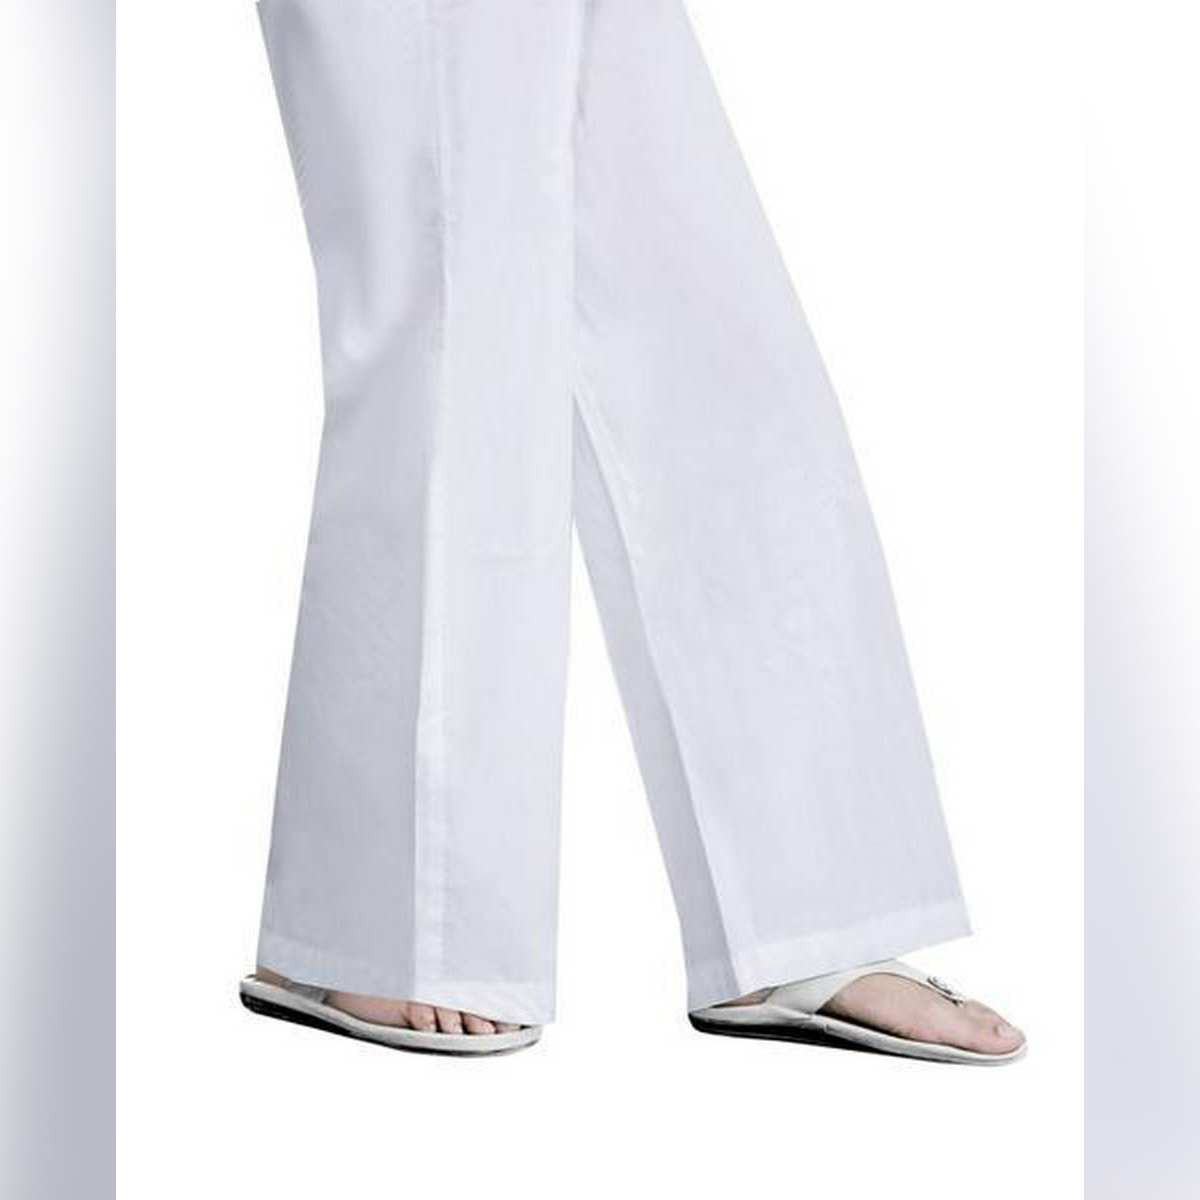 Khas Stores Winter Collection WHITE Cotton Polyester Medium 1 PC Stitched Trouser - 1000000021047